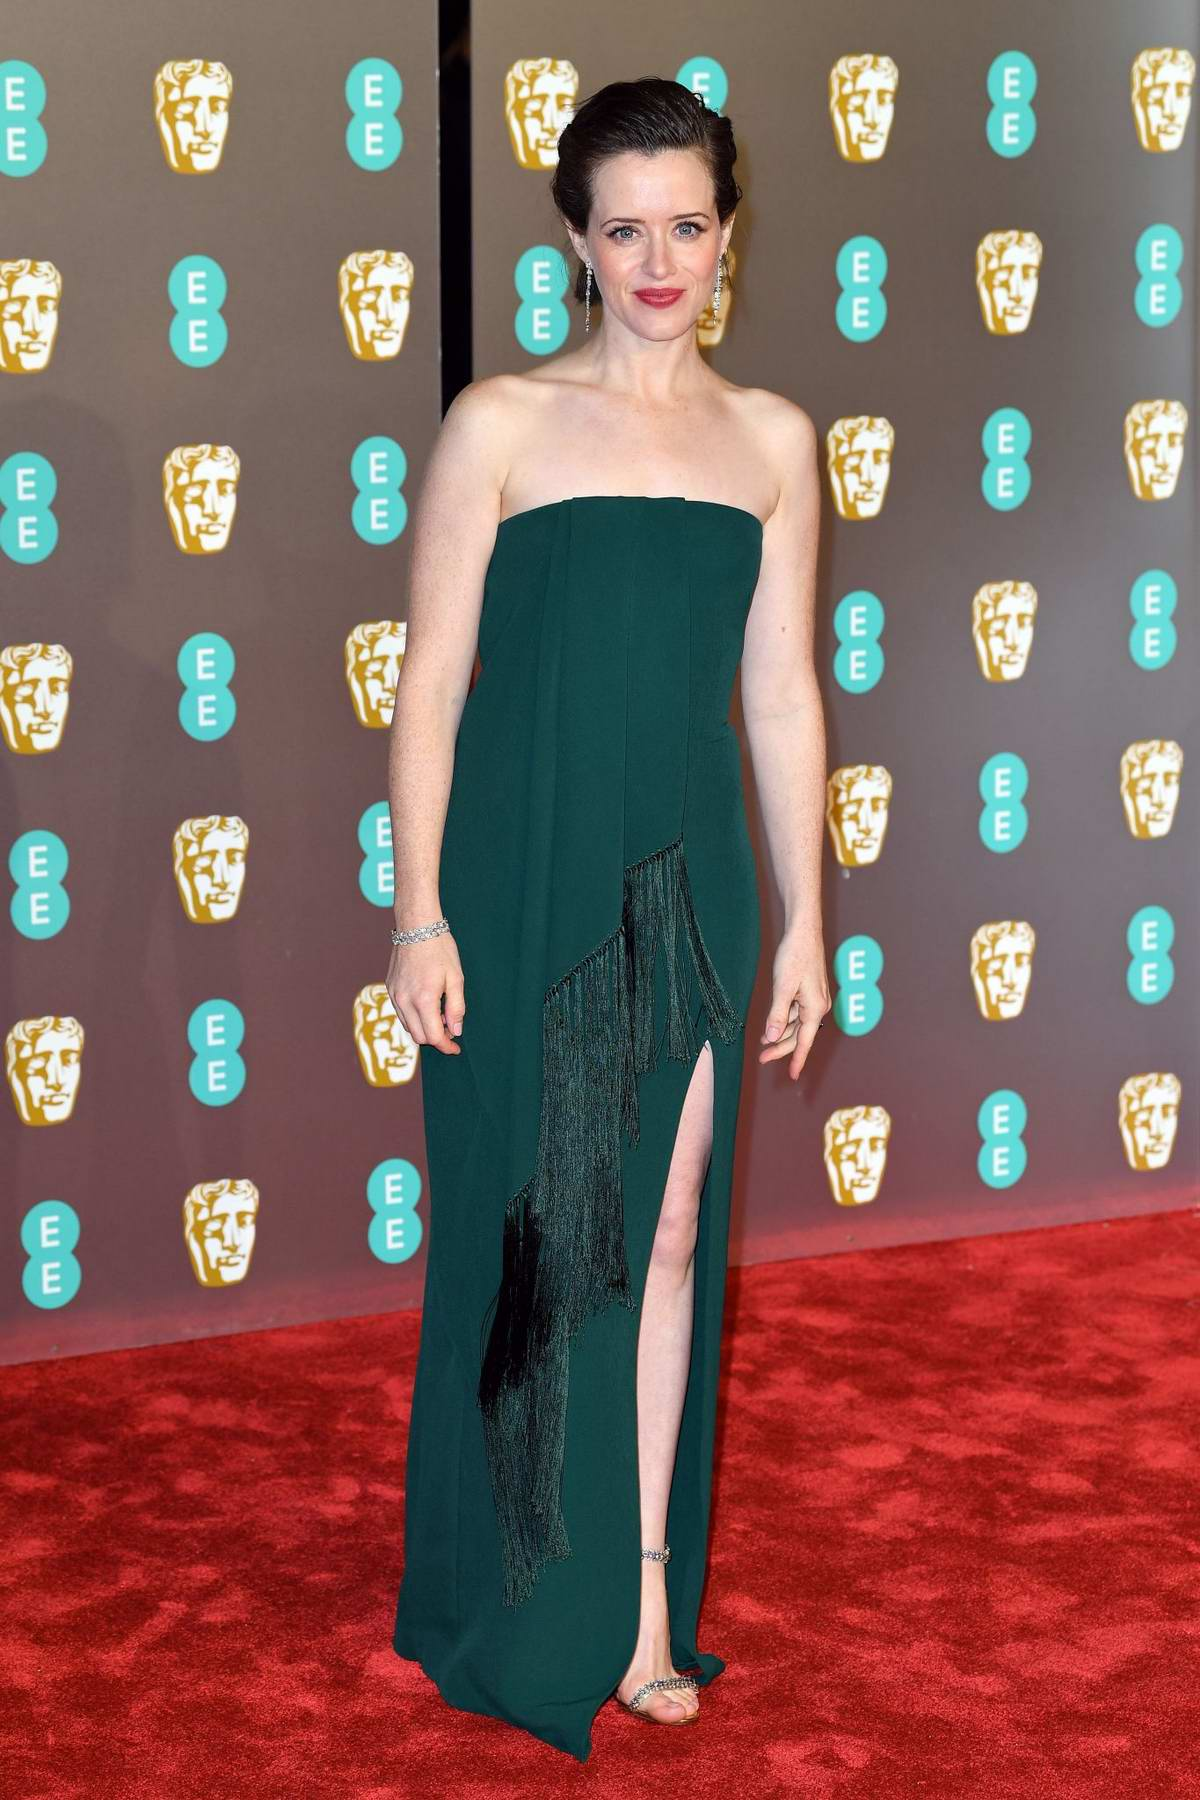 Claire Foy attends the 72nd EE British Academy Film Awards (BAFTA 2019) at Royal Albert Hall in London, UK